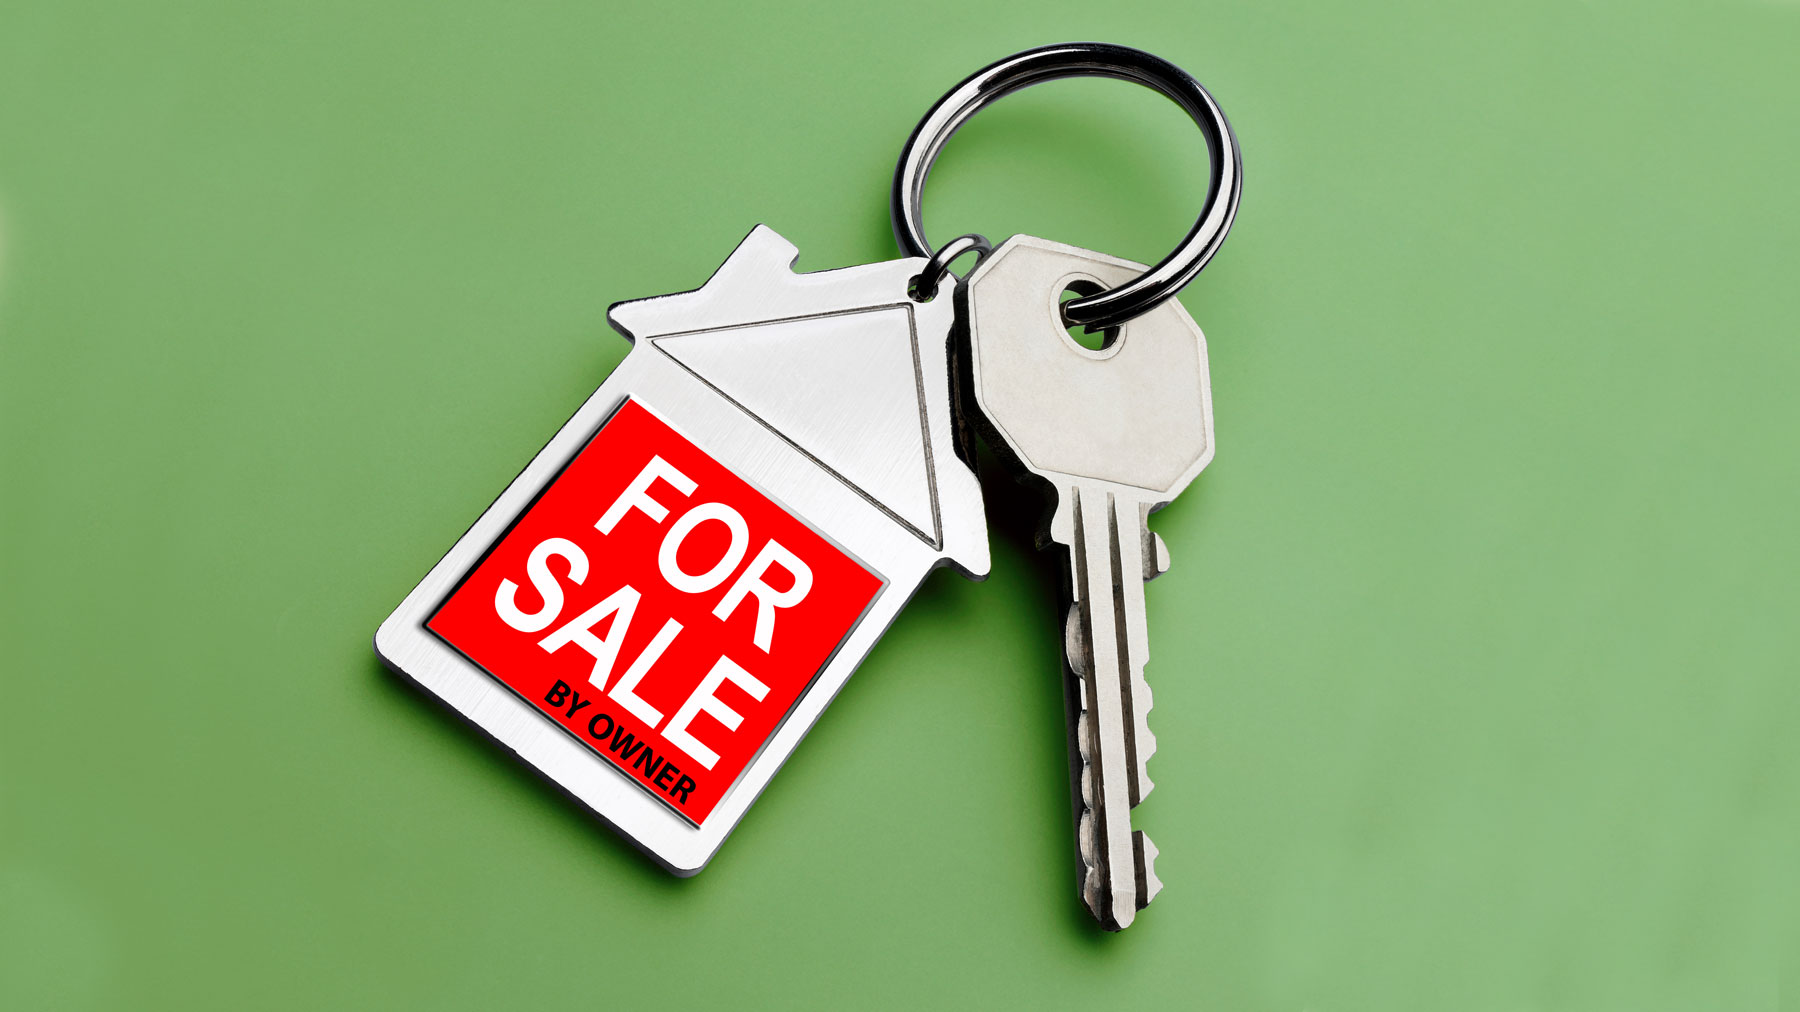 For Sale By Owner - pros and cons of selling by owner (FSBO) (house keys)